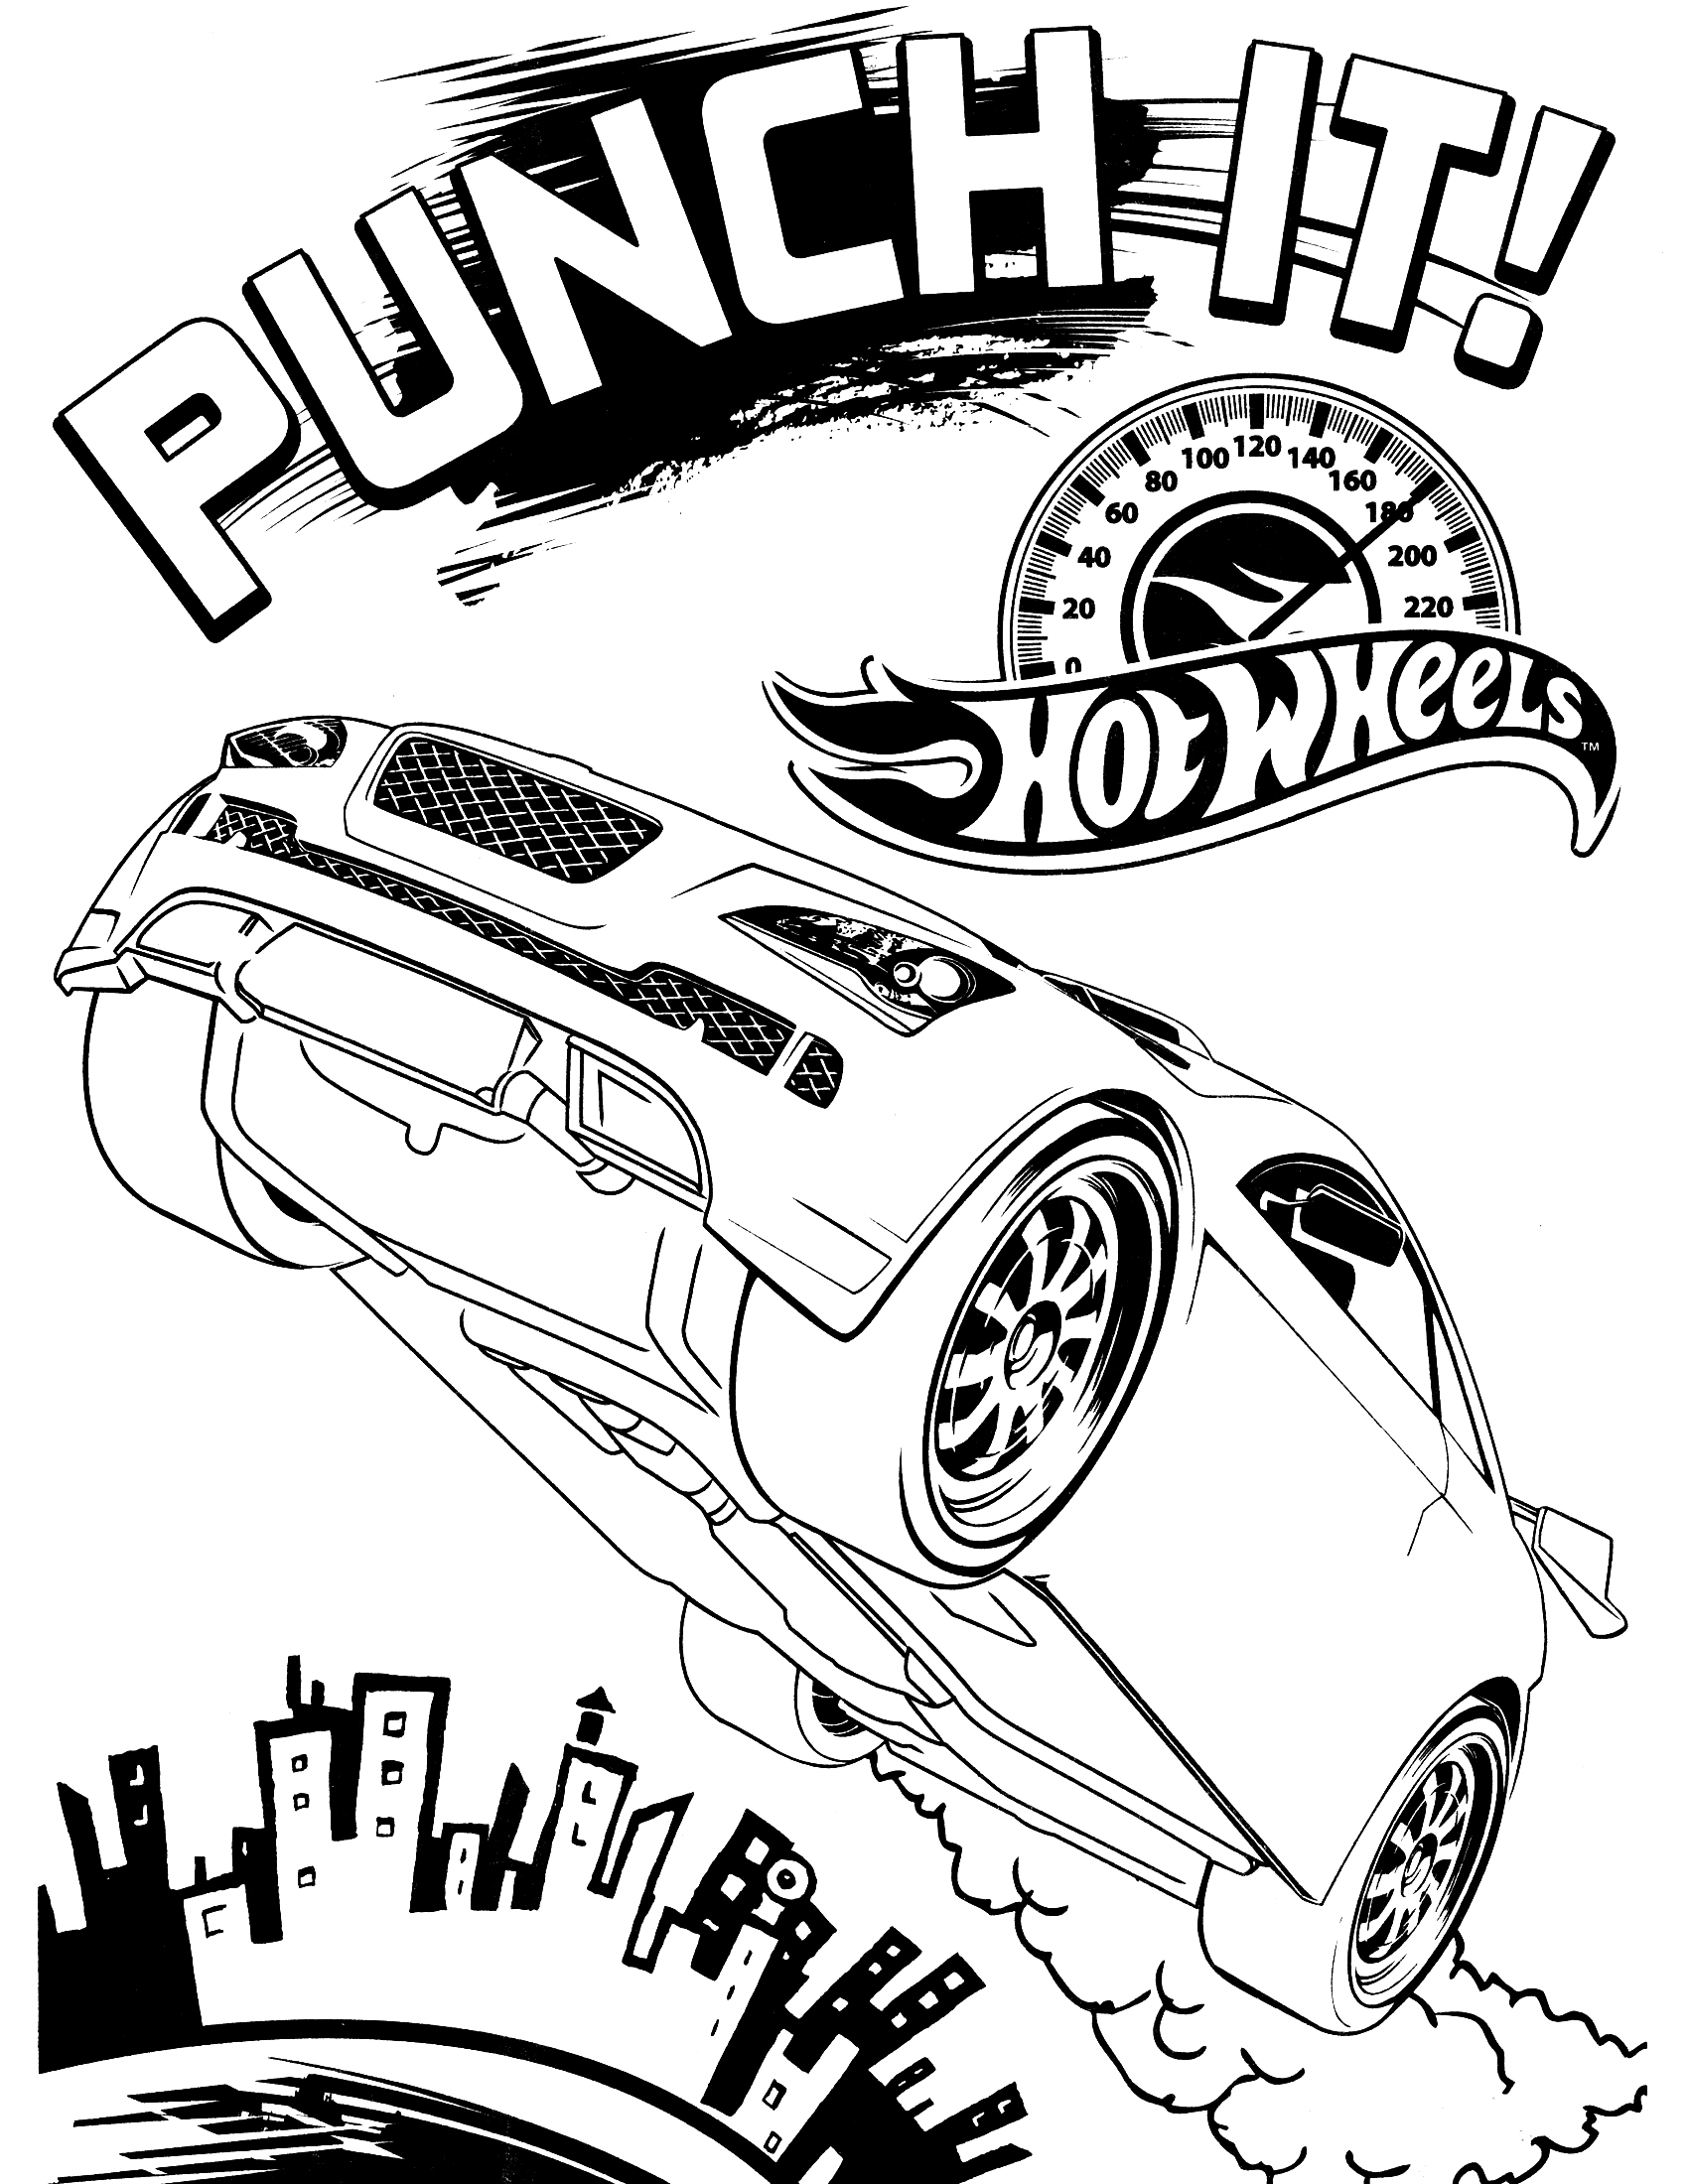 hotwheels coloring pages free printable hot wheels coloring pages for kids coloring pages hotwheels